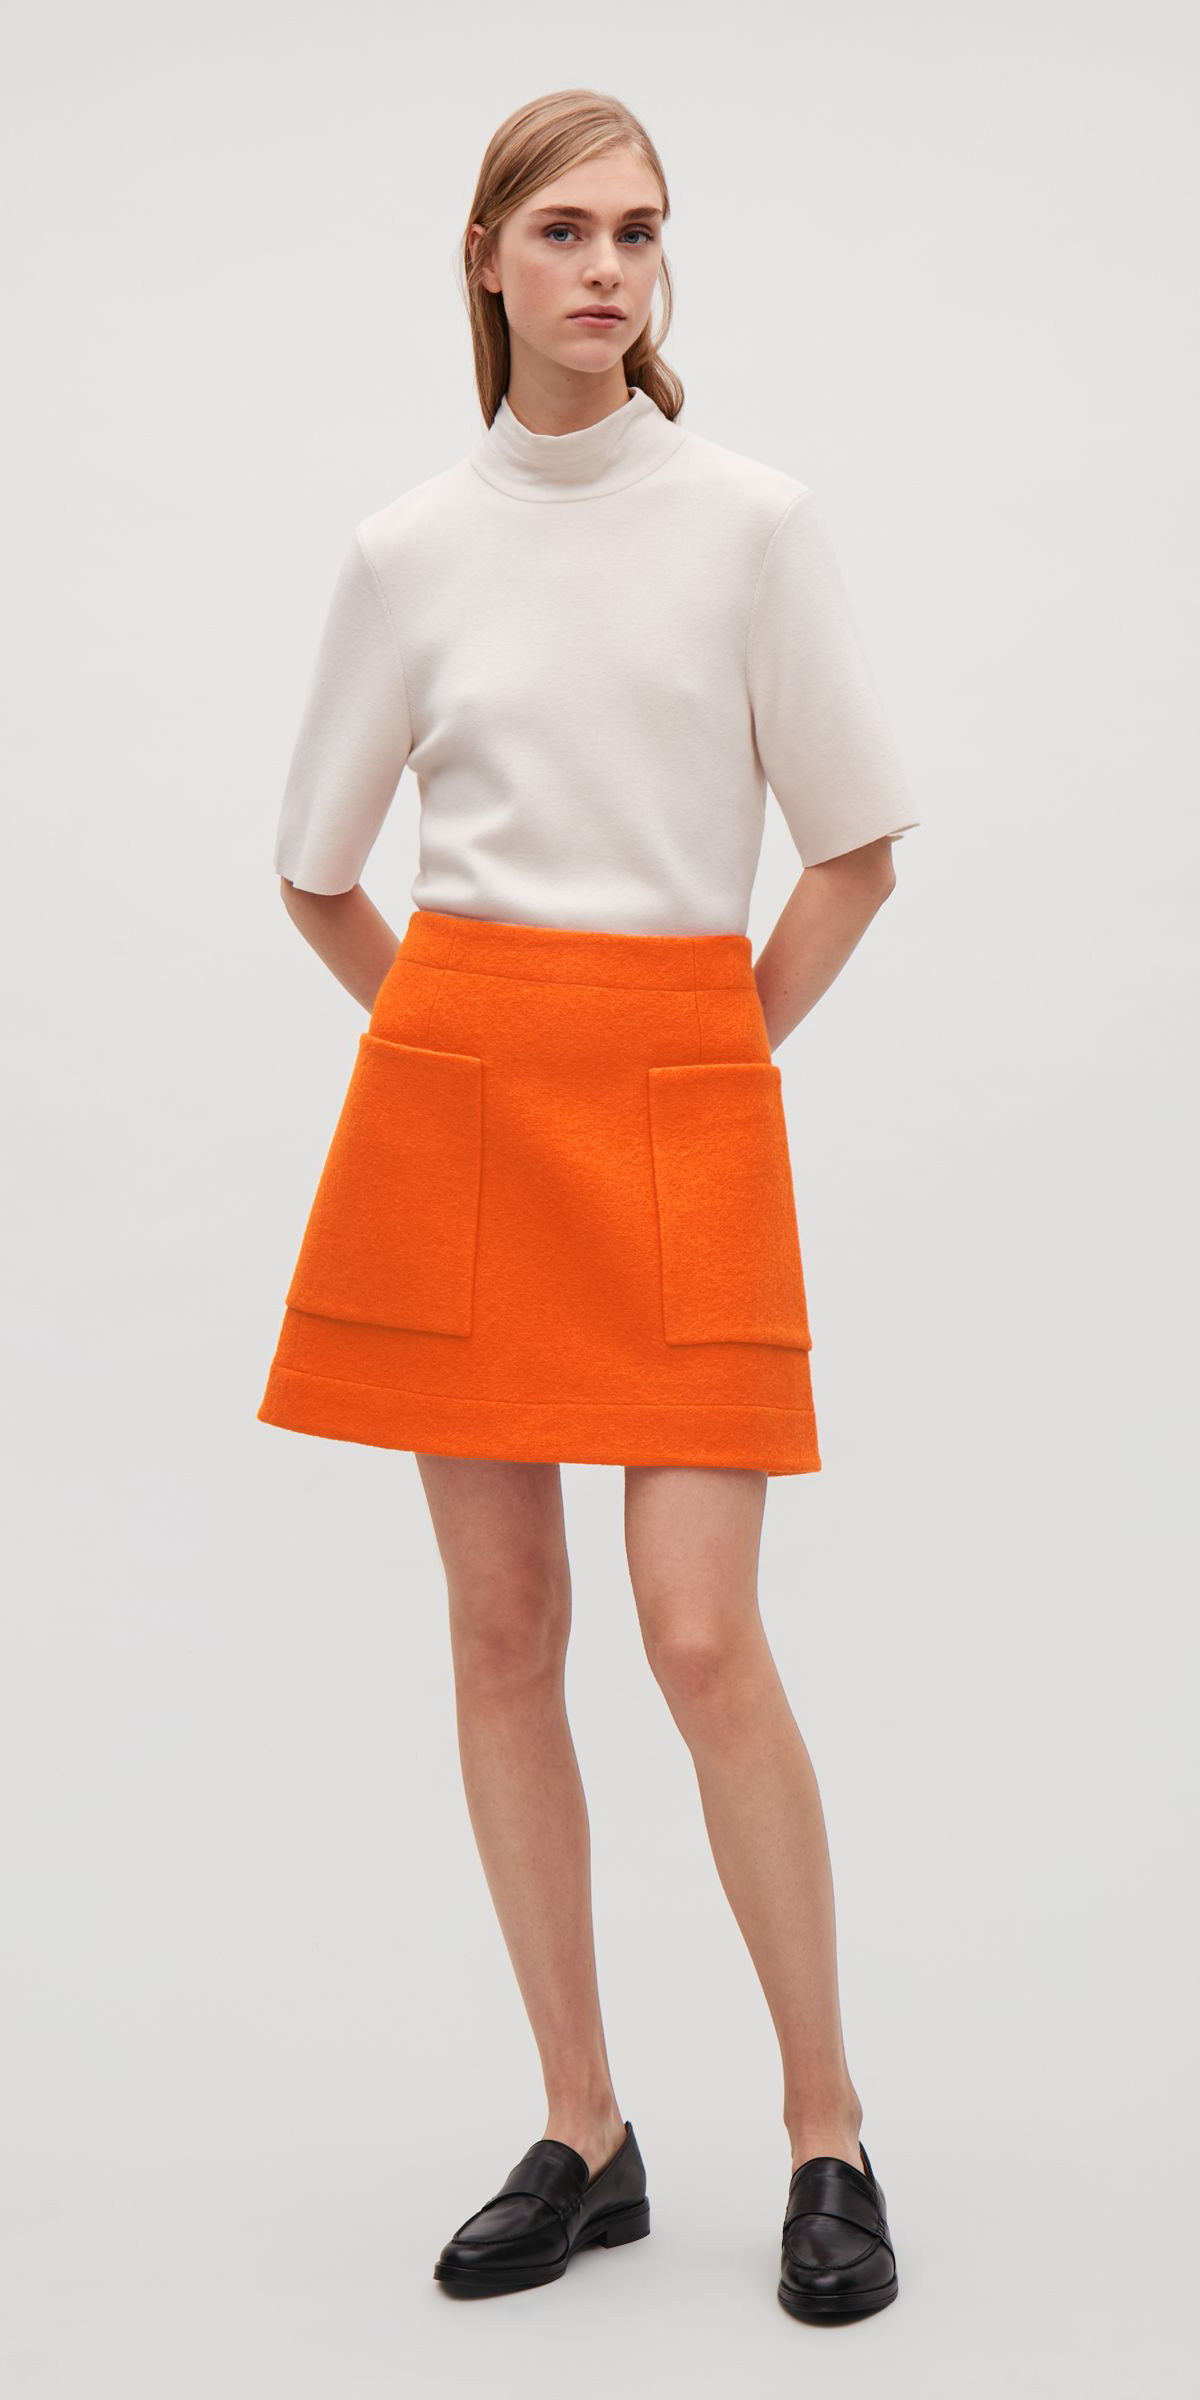 orange-mini-skirt-white-sweater-black-shoe-loafers-fall-winter-blonde-lunch.jpg